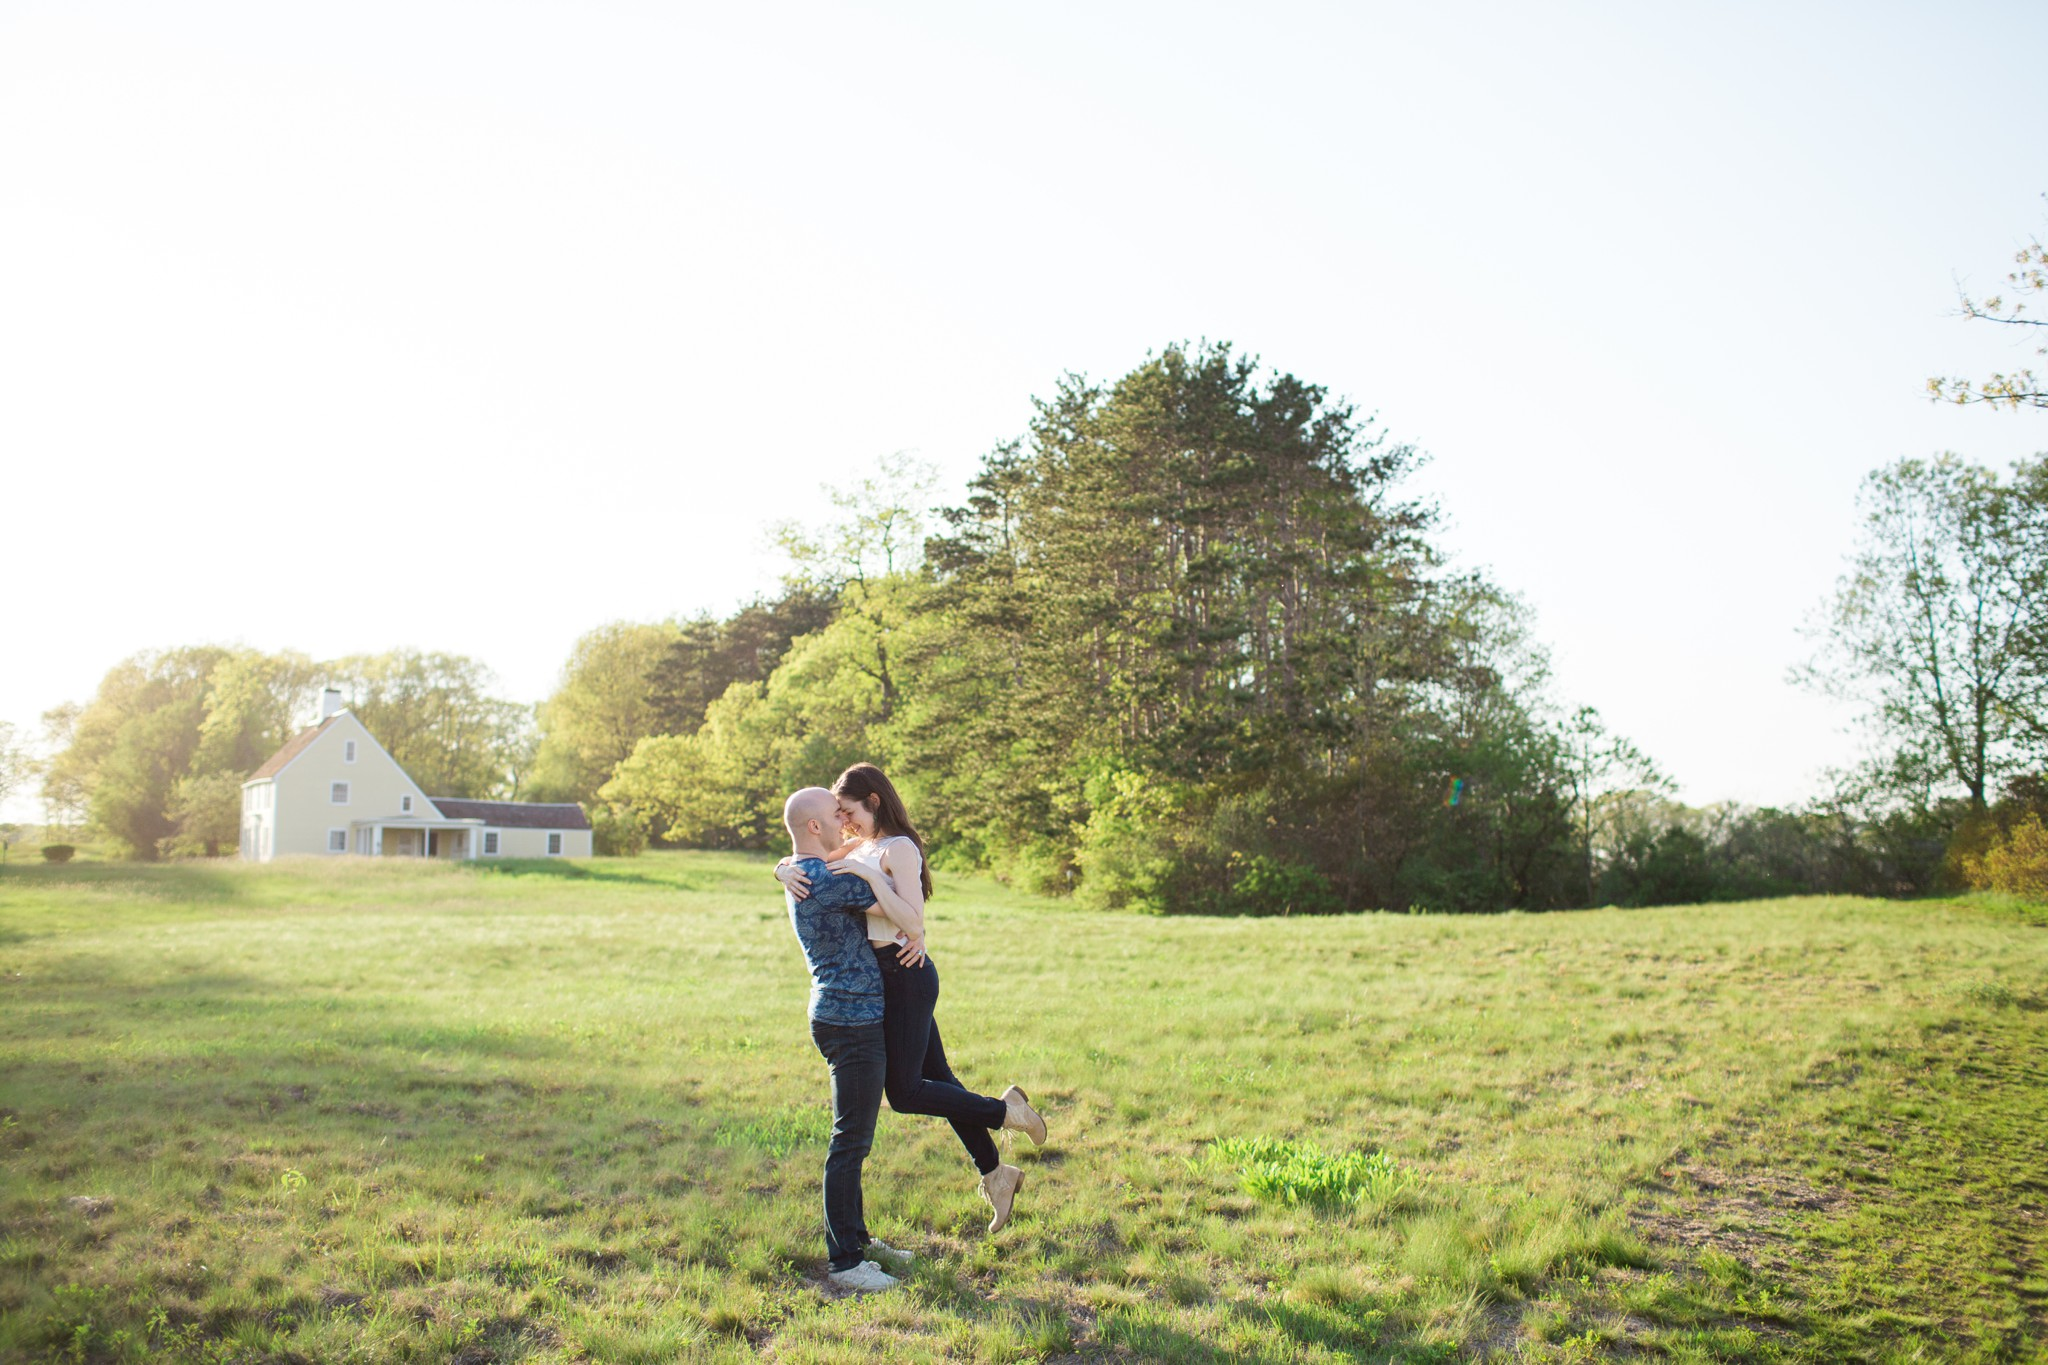 deborah_zoe_photography_engagement_session_0094.JPG